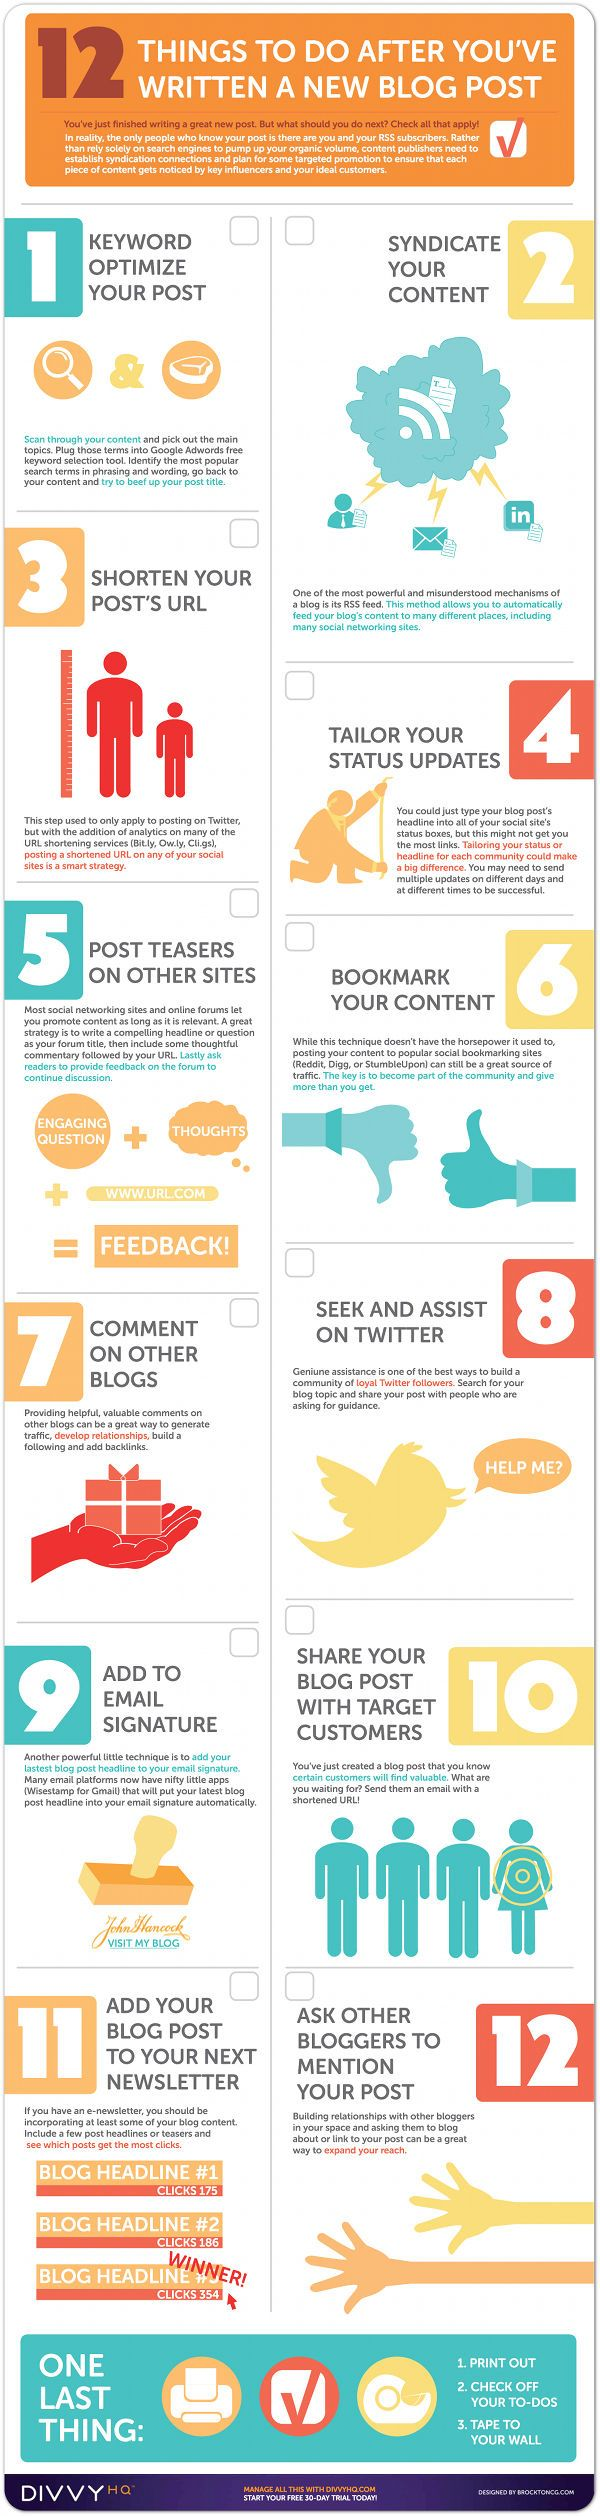 Infographic: 12 Things to Do After You Write a New Blog Post